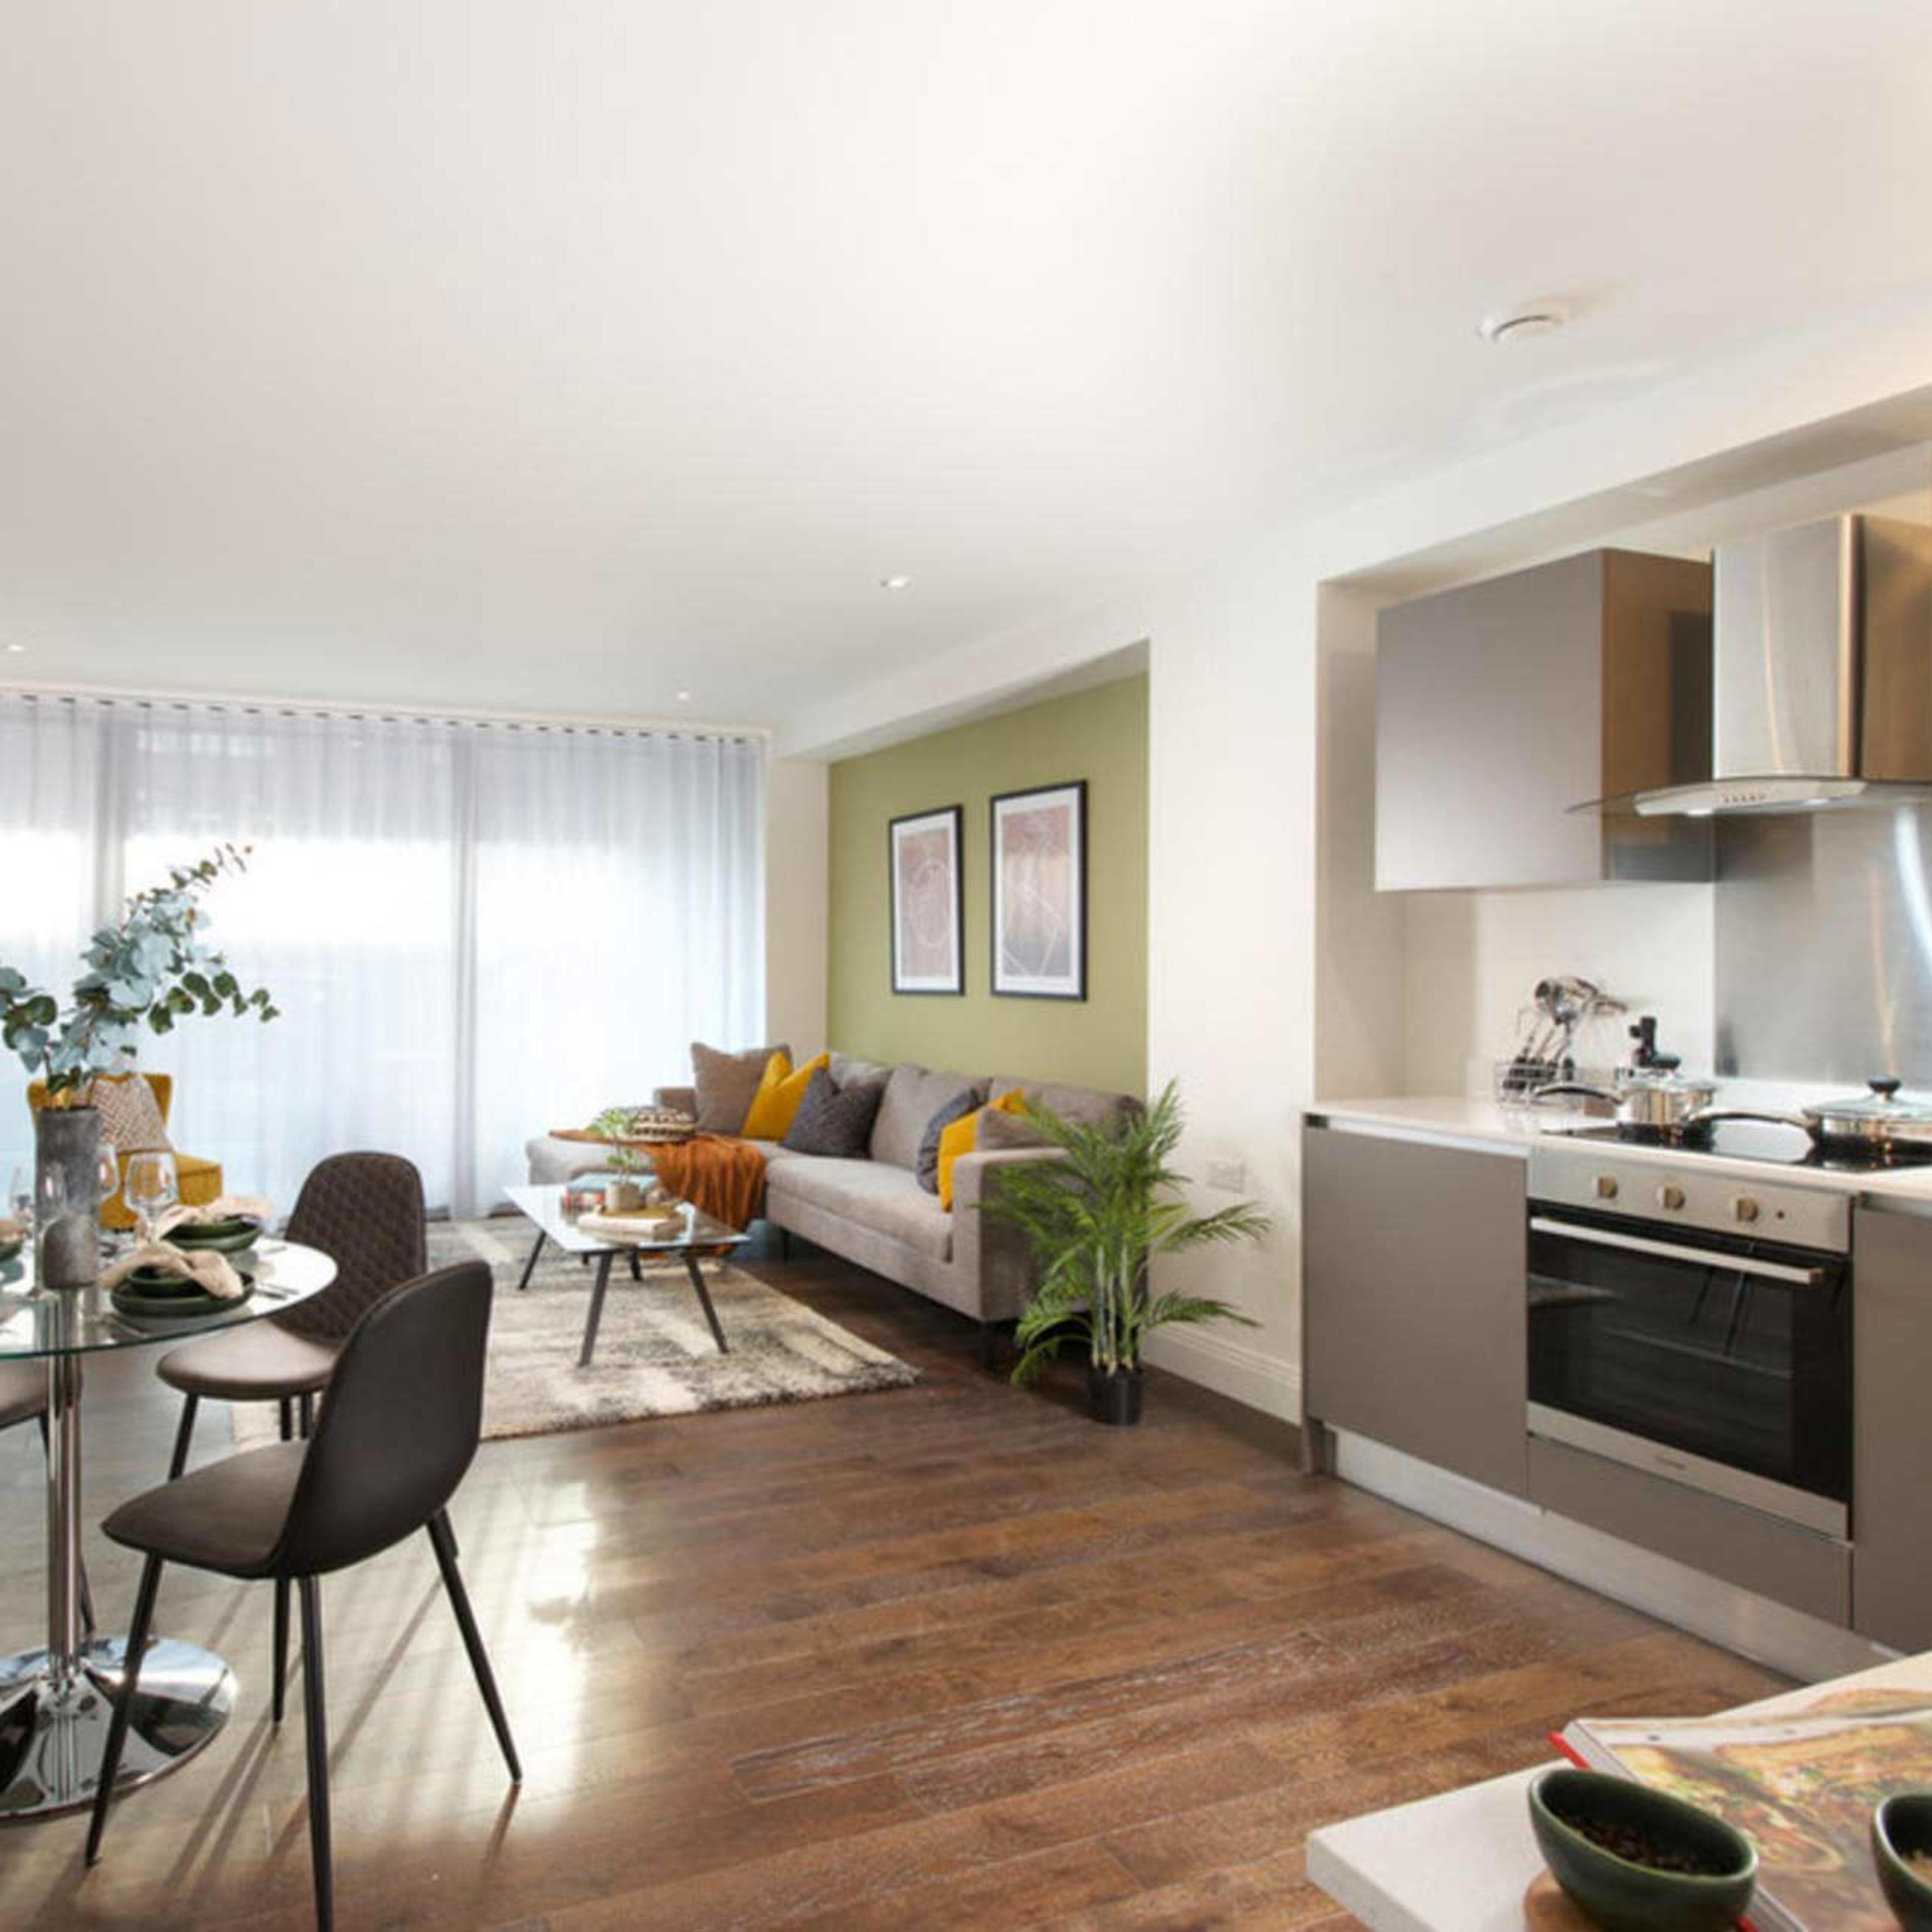 An open plan living area in an apartment with wood effect flooring and full height windows